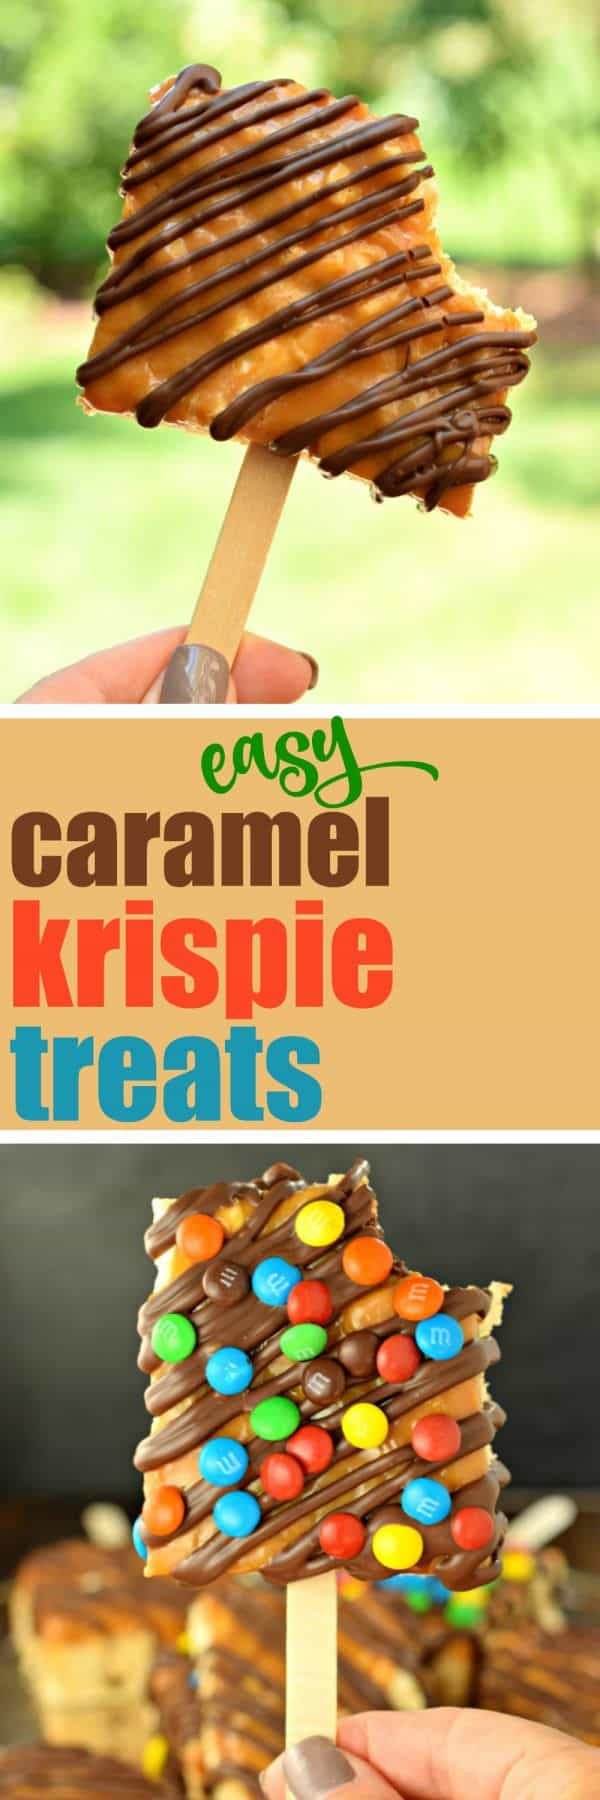 These Easy, Gourmet Caramel and Chocolate Rice Krispie Treats are so fun to make AND eat! Perfect for birthdays, bake sales, and even a fun snack the kids can help make! #bakesale #krispietreats